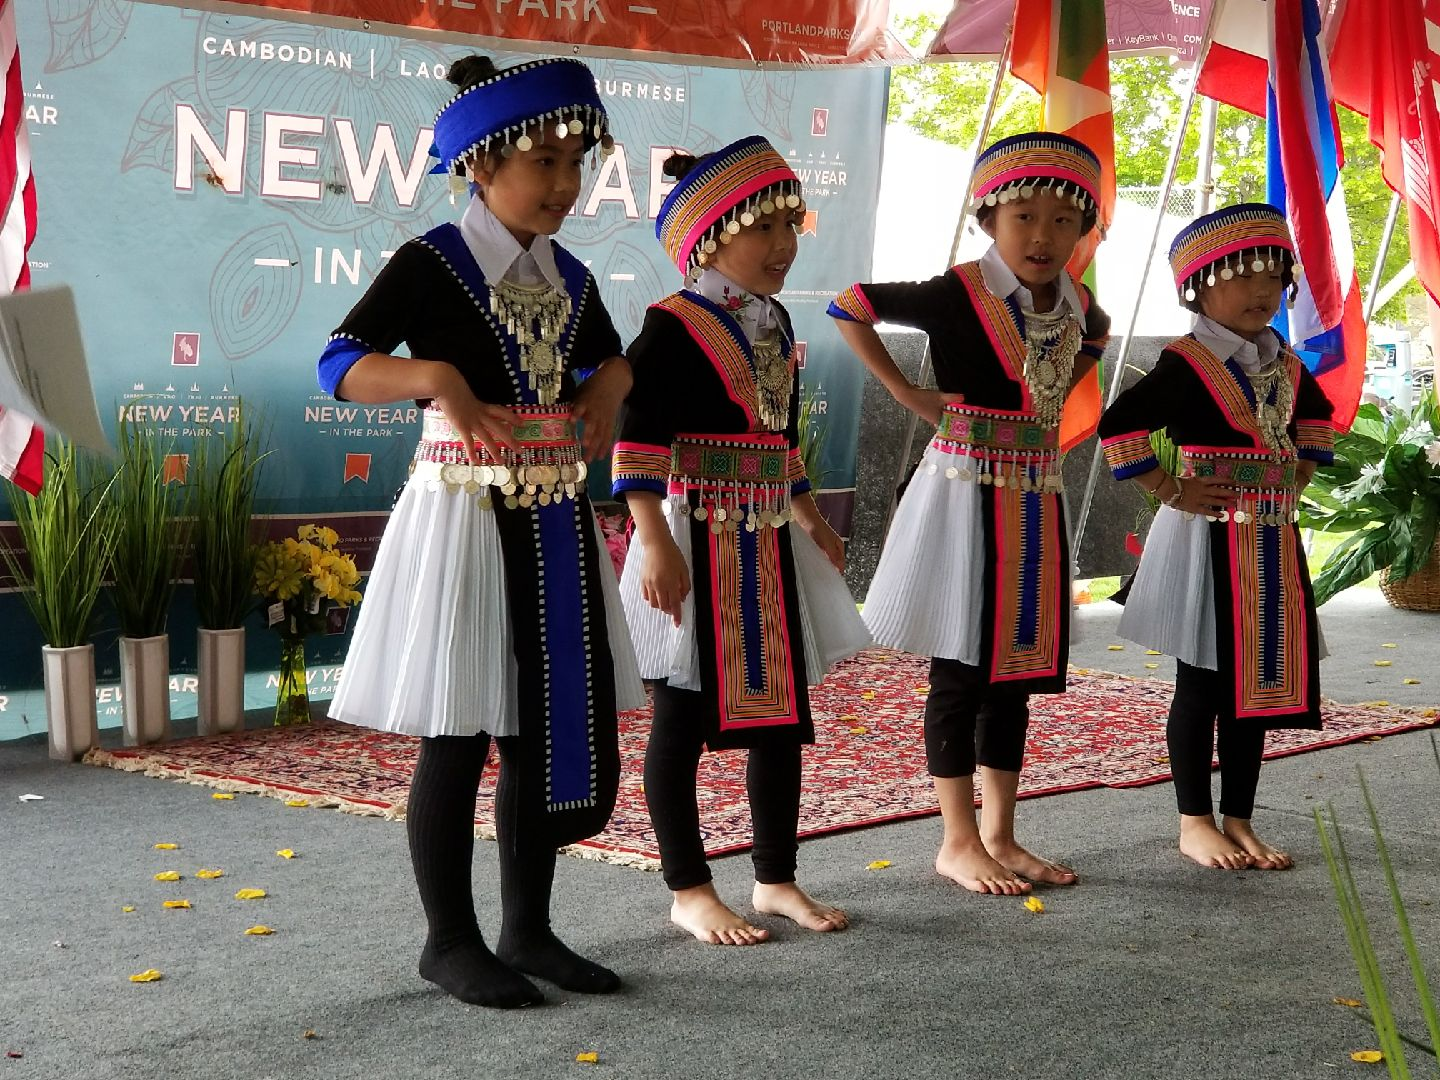 New Year in the Park - April 28, 2018, celebrating Cambodian, Thai, Lao and Burmese cultures. Click here for photos.